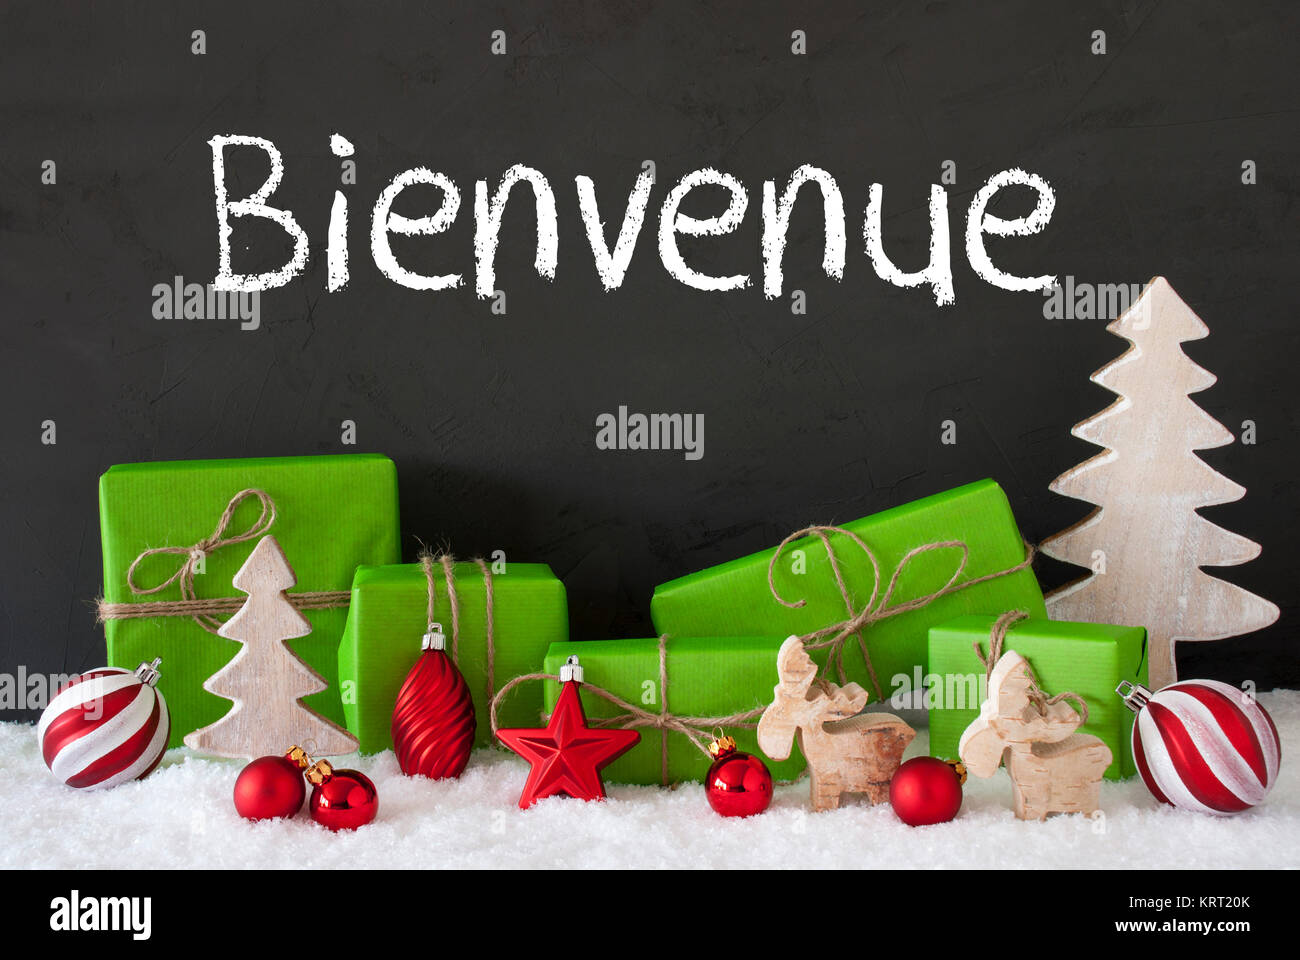 French Text Bienvenue Means Welcome. Green Gifts Or Presents With ...